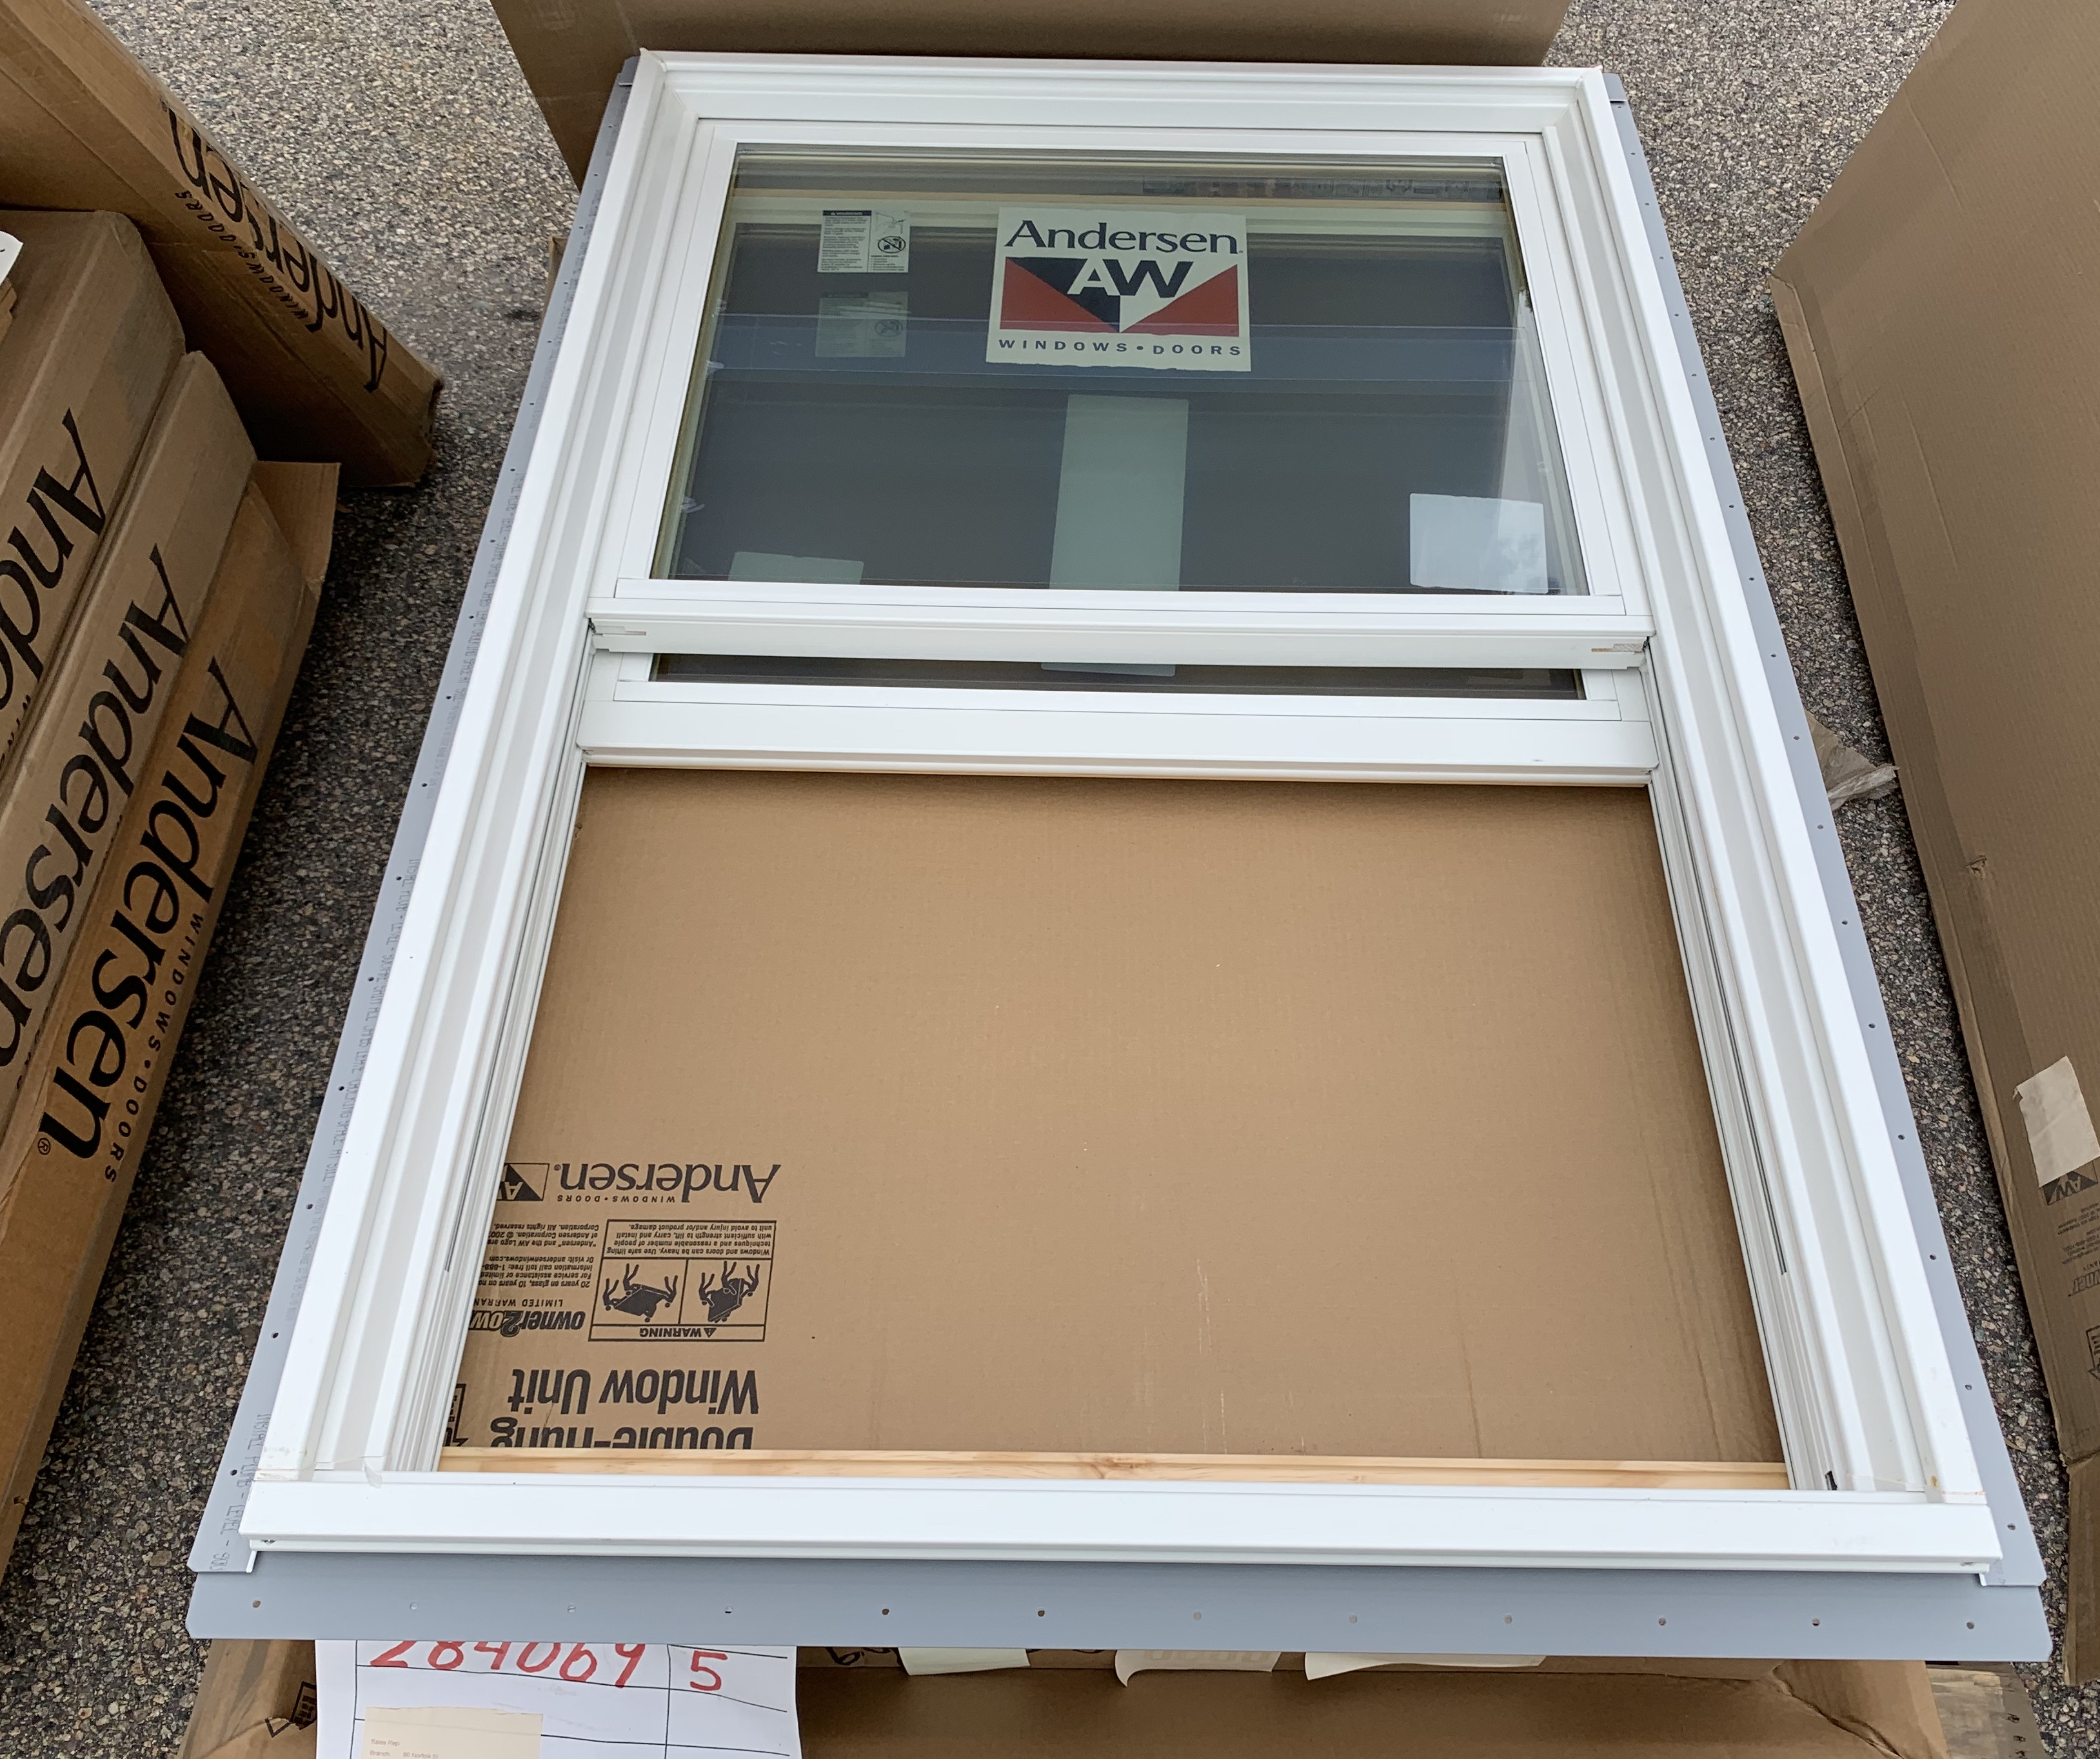 Andersen 3449 Double Hung Window